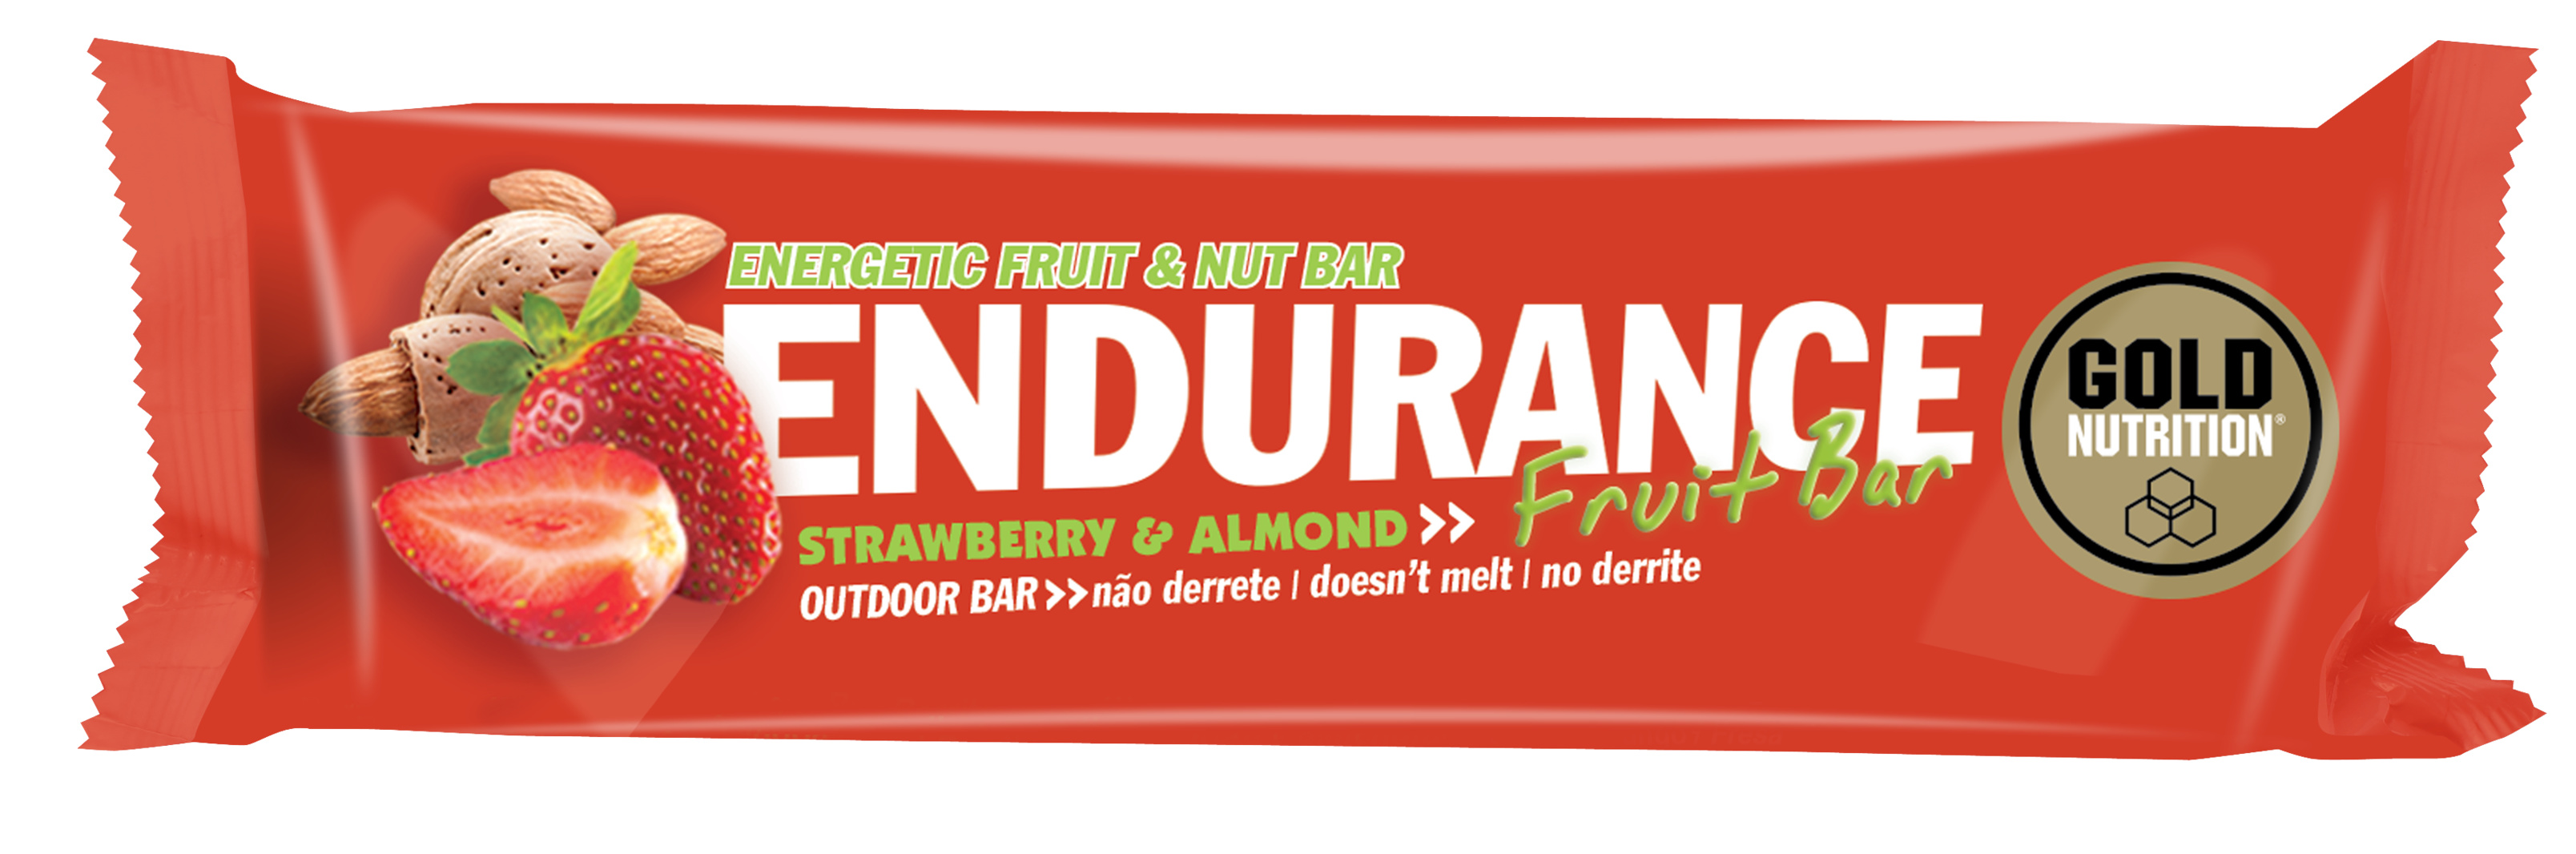 GOLDNUTRITION ENDURANCE FRUIT BAR CAPSUNI 40G